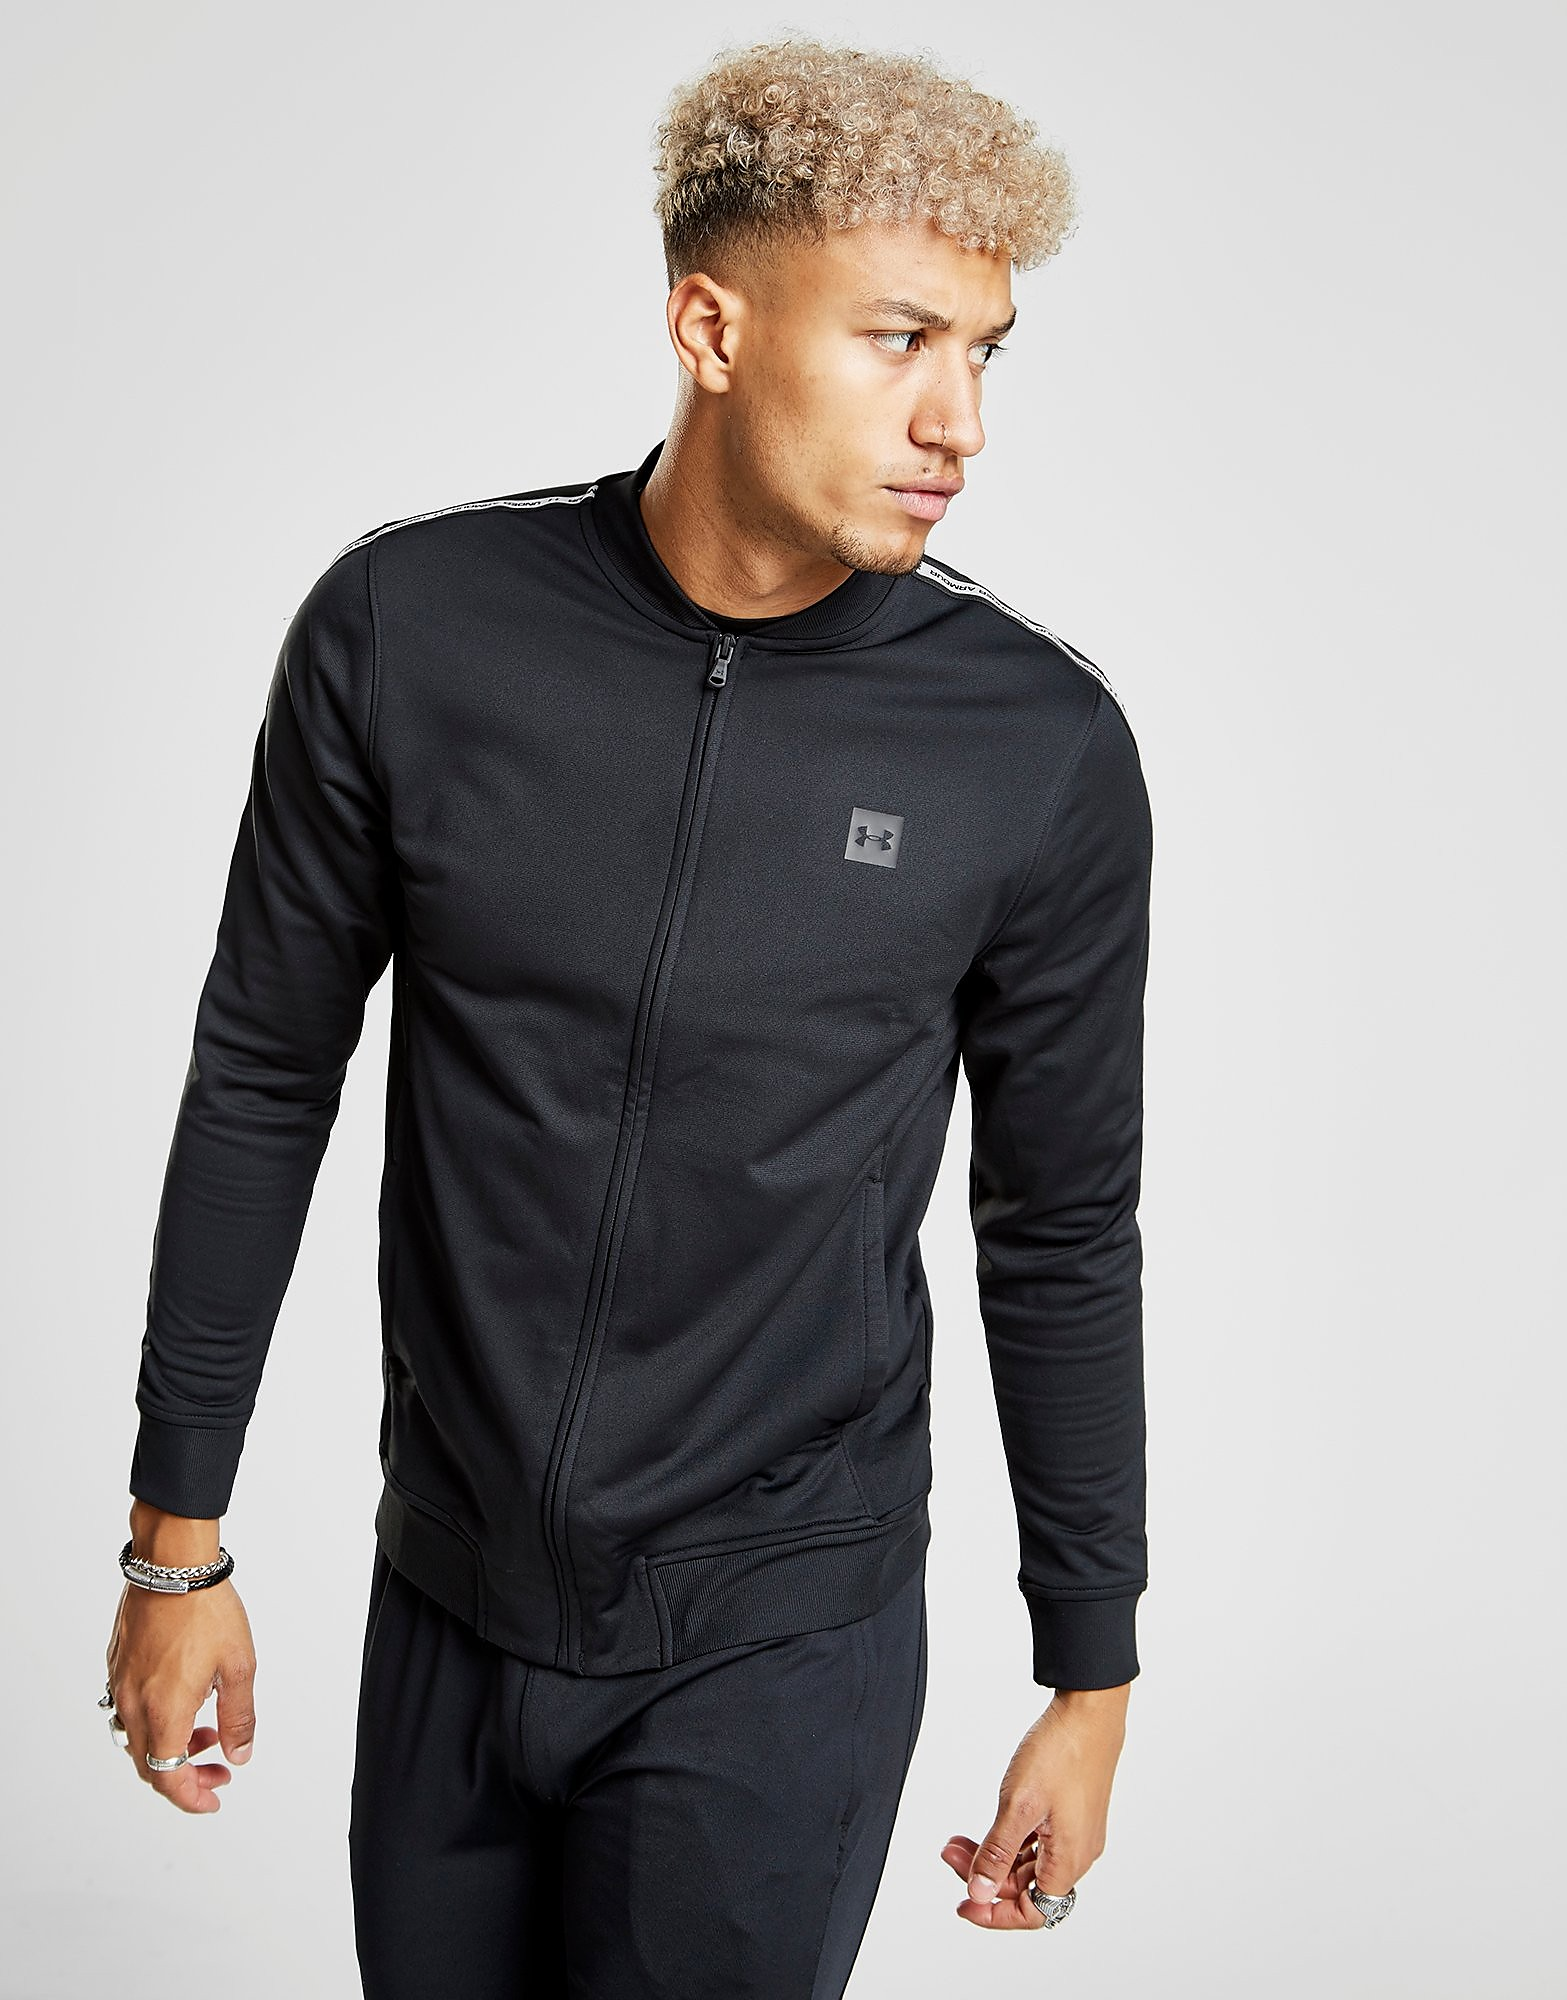 Under Armour Sportstyle Tape Track Top Heren - Zwart - Heren